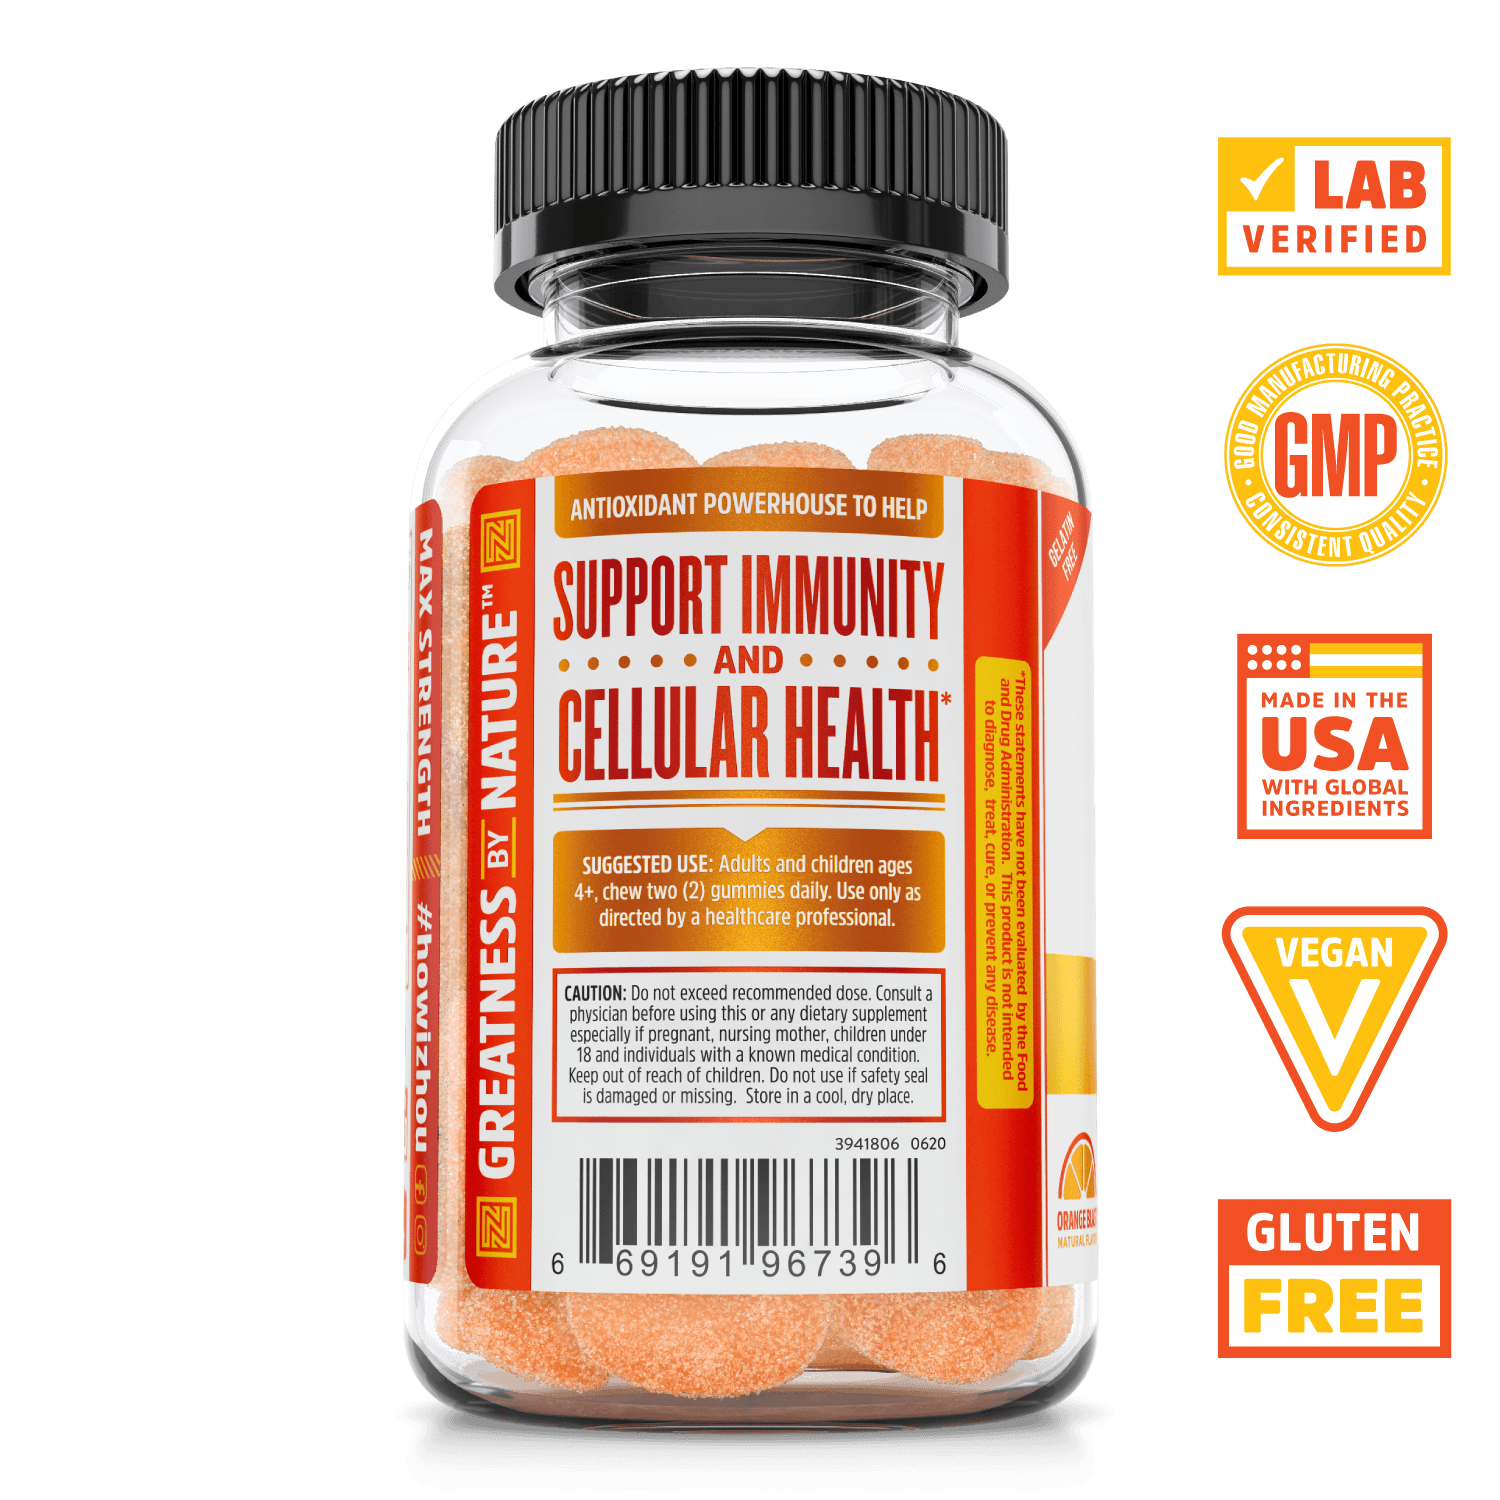 Zhou Nutrition Max Strength Vitamin C+ Gummies.  Bottle side. Lab verified, good manufacturing practices, made in the USA with global ingredients, vegan, gluten free.